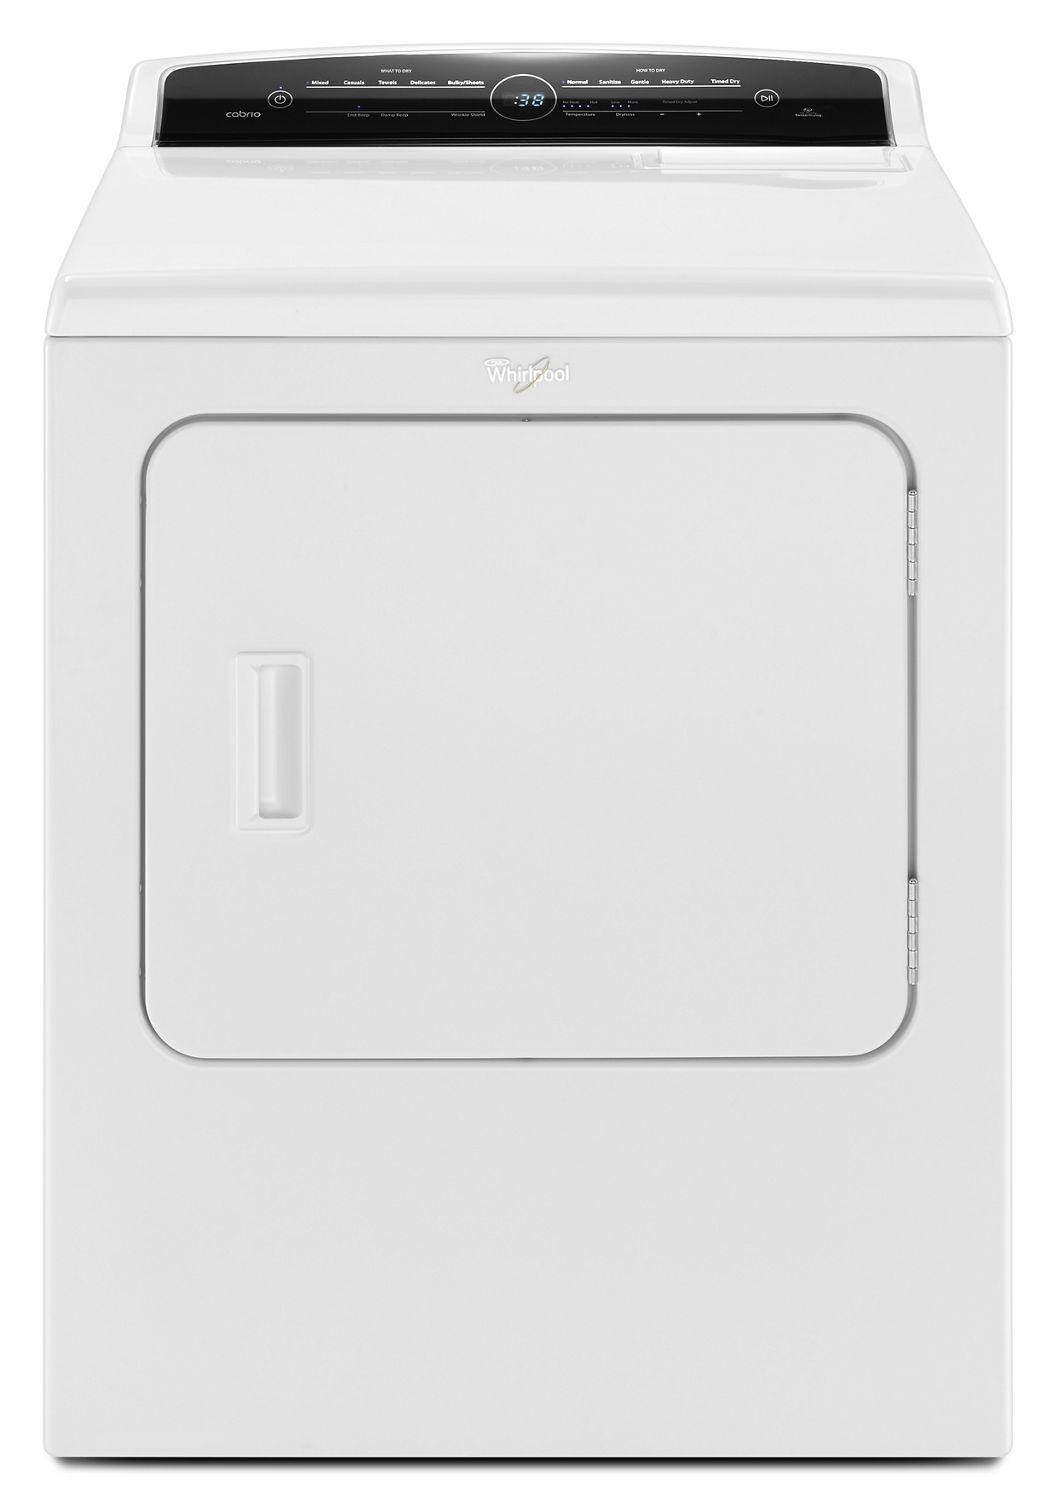 Whirlpool7.0 Cu.Ft Top Load He Electric Dryer With Accudry , Intuitive Touch Controls White